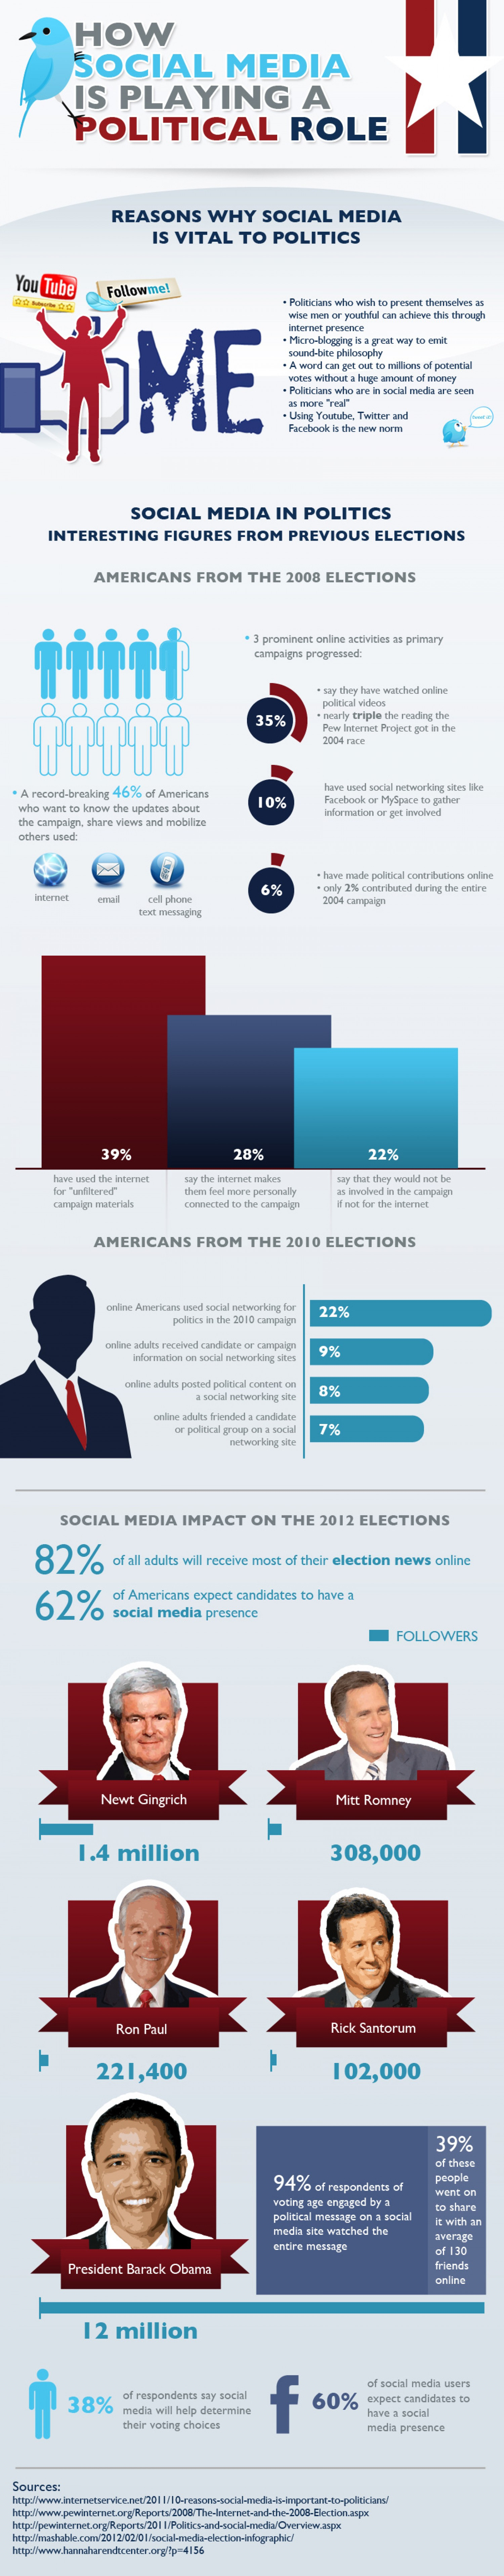 How social media is playing a political role?